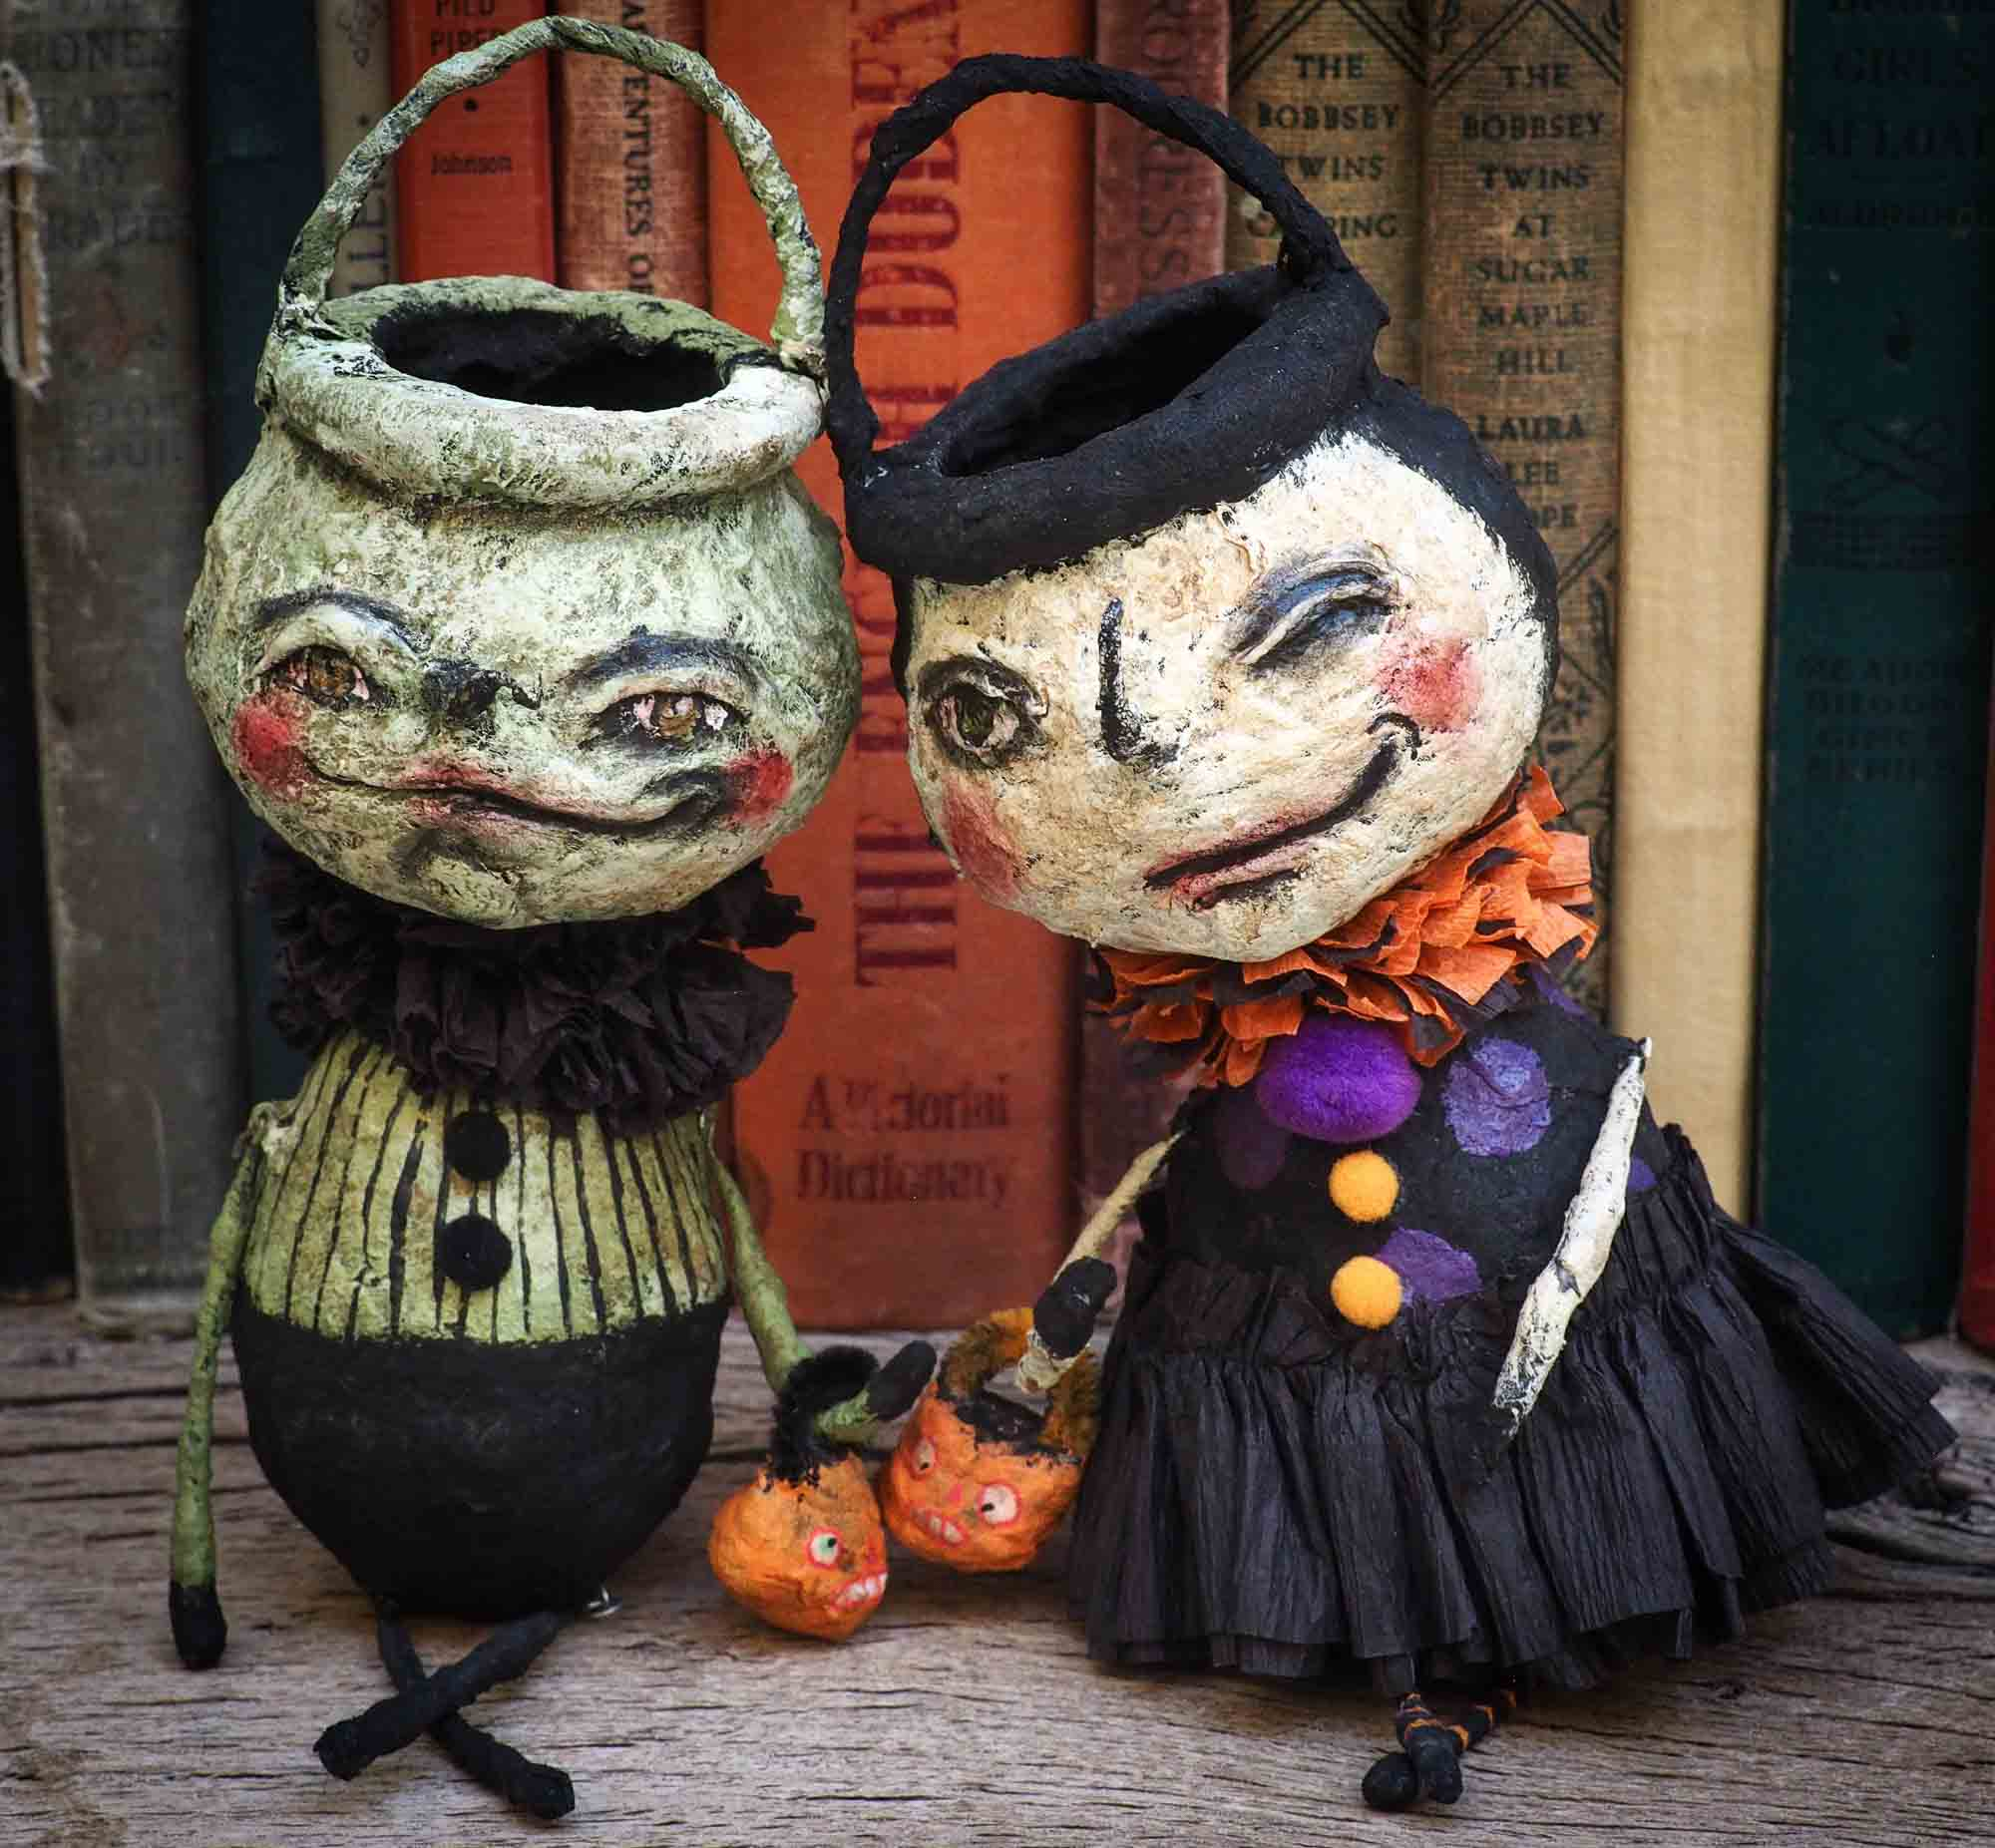 A collection of Danita original handmade Halloween art doll figures and toys. The jack-o-lanterns, pumpkins, witches, ghosts, ghouls and night creatures. They can be used as shelf home decor decoration or ornaments to hang on a Halloween or Christmas tree.